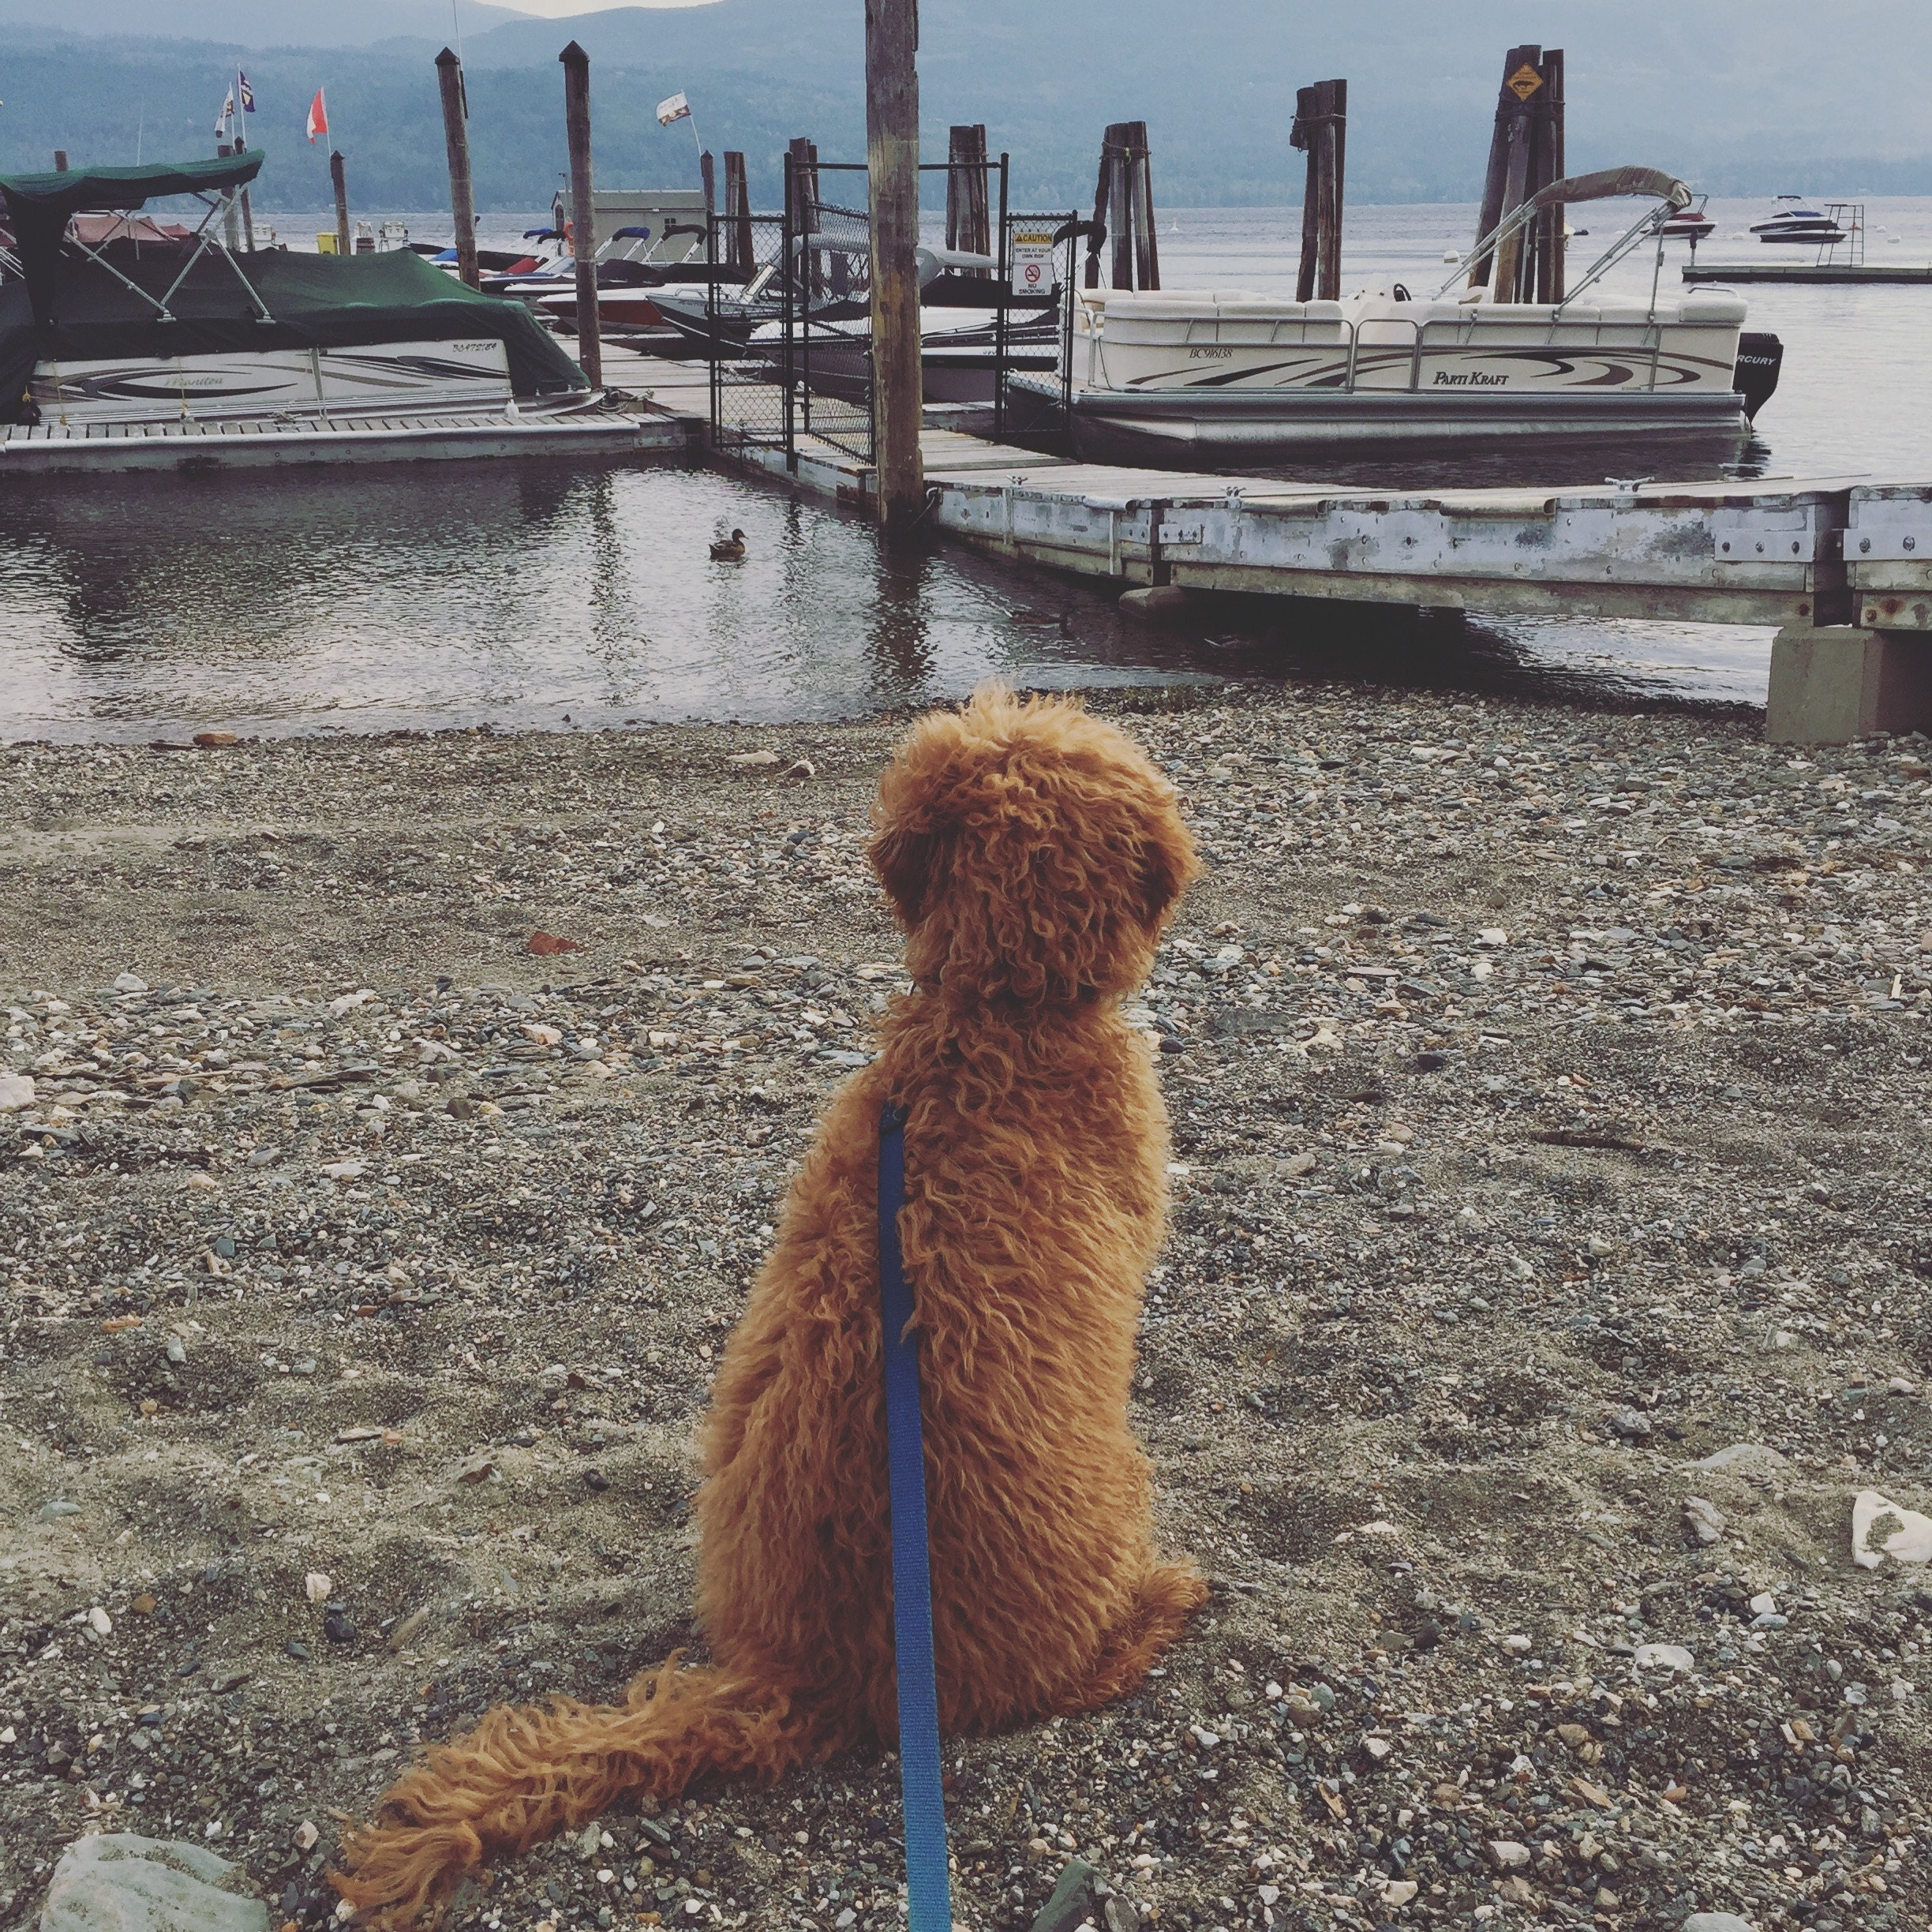 Our little puppy at the boat dock